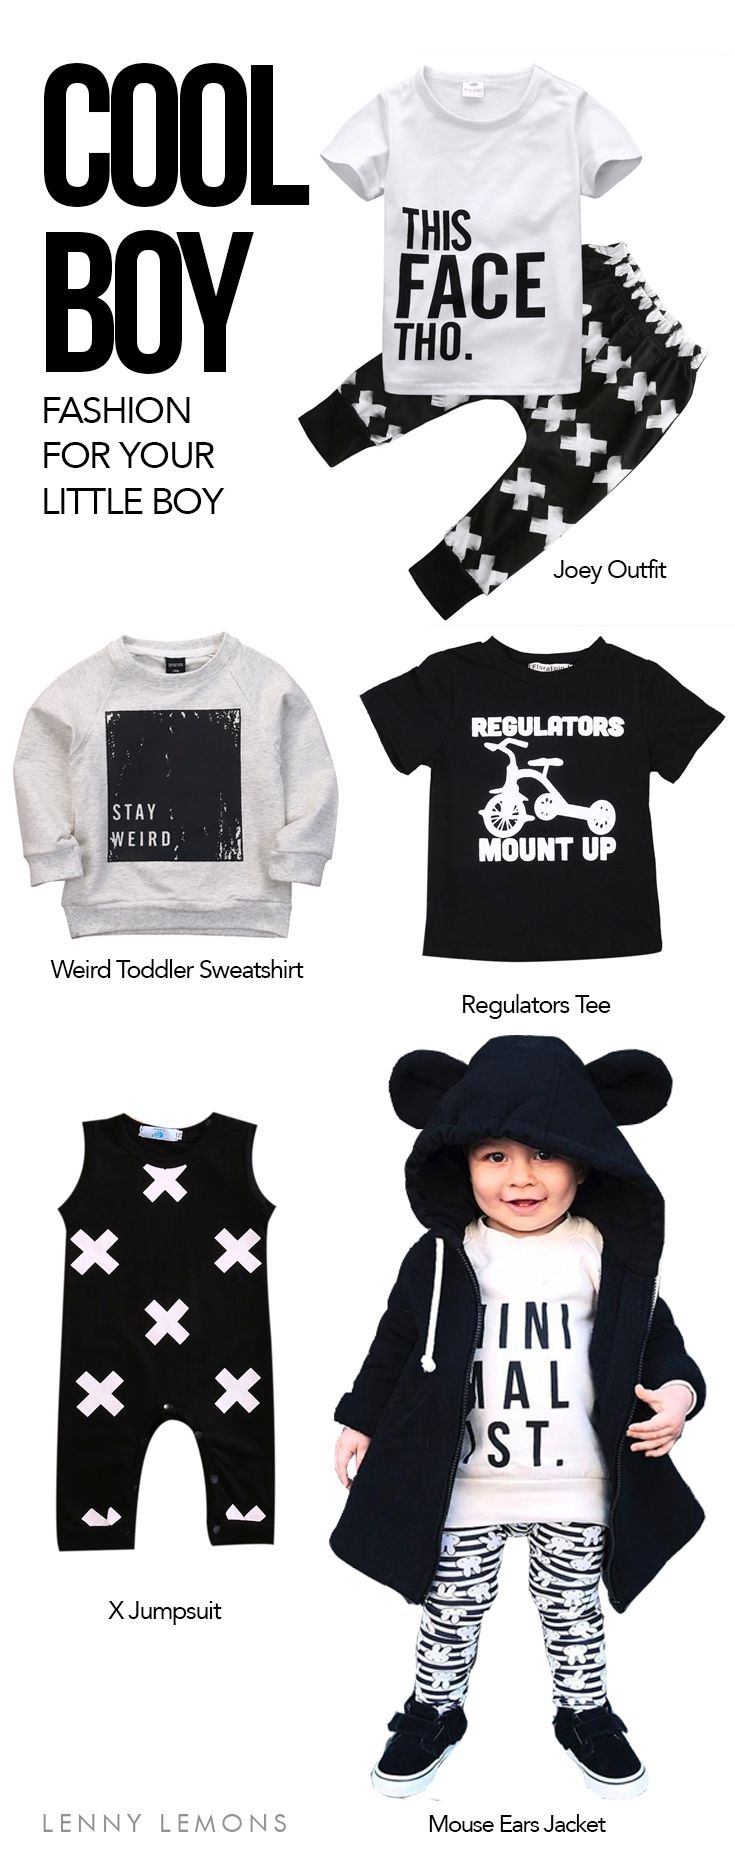 Cute and trendy clothes for your baby boy & Toddler. Fashionable and comfortable items for your boys. Black and white fashion. Funny quotes tshirt, mouse ears jacket, x jumpsuit, weird toddler sweatshirt, regulators mount up tee, this face to. Lenny Lemons, Babies and toddler apparel #babyboy #babyclothes #lennylemons